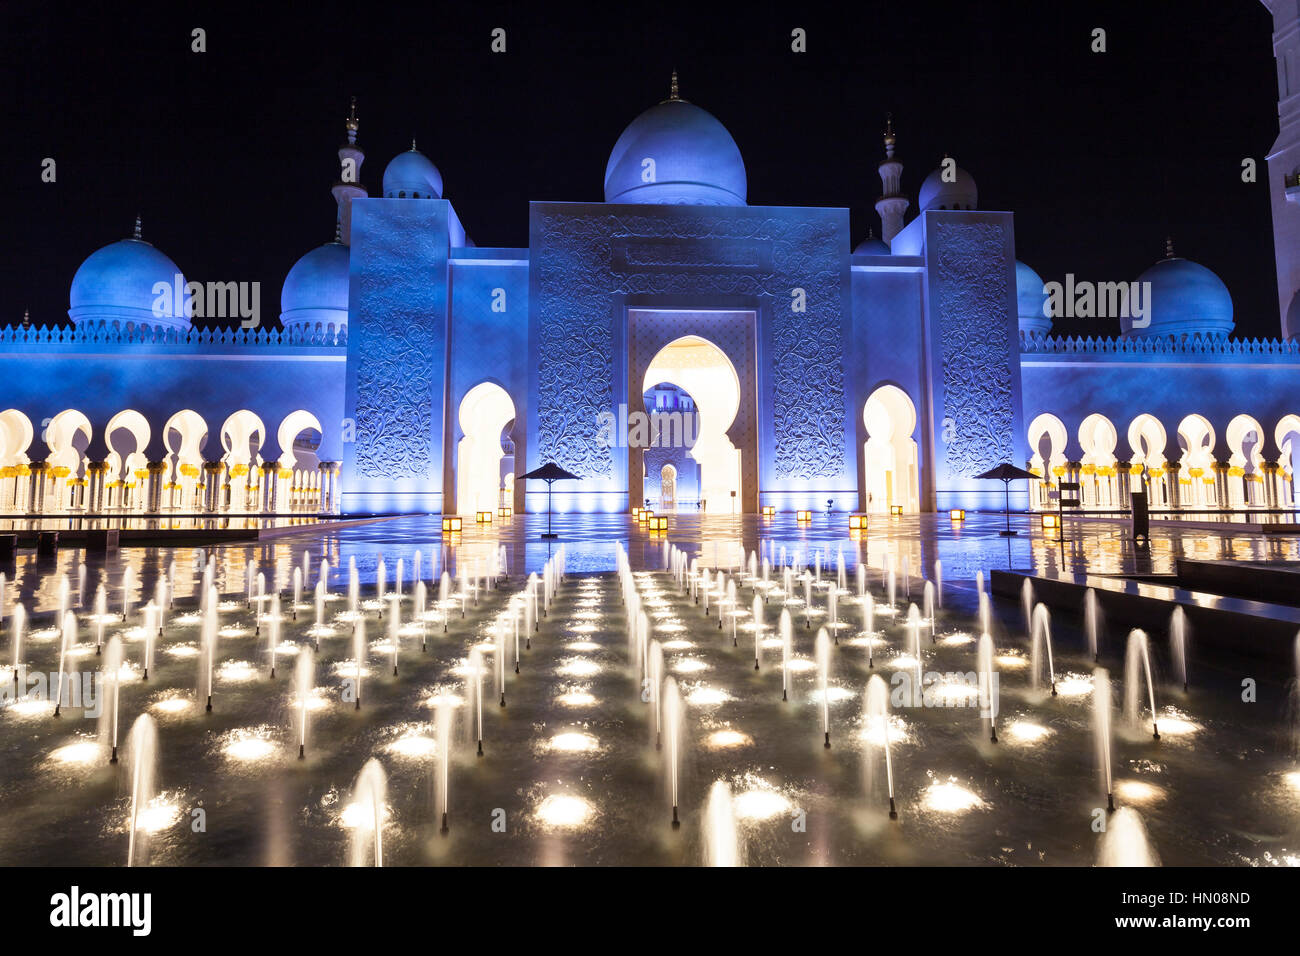 Sheikh Zayed Grand Mosque illuminated at night. Abu Dhabi, United Arab Emirates, Middle East - Stock Image